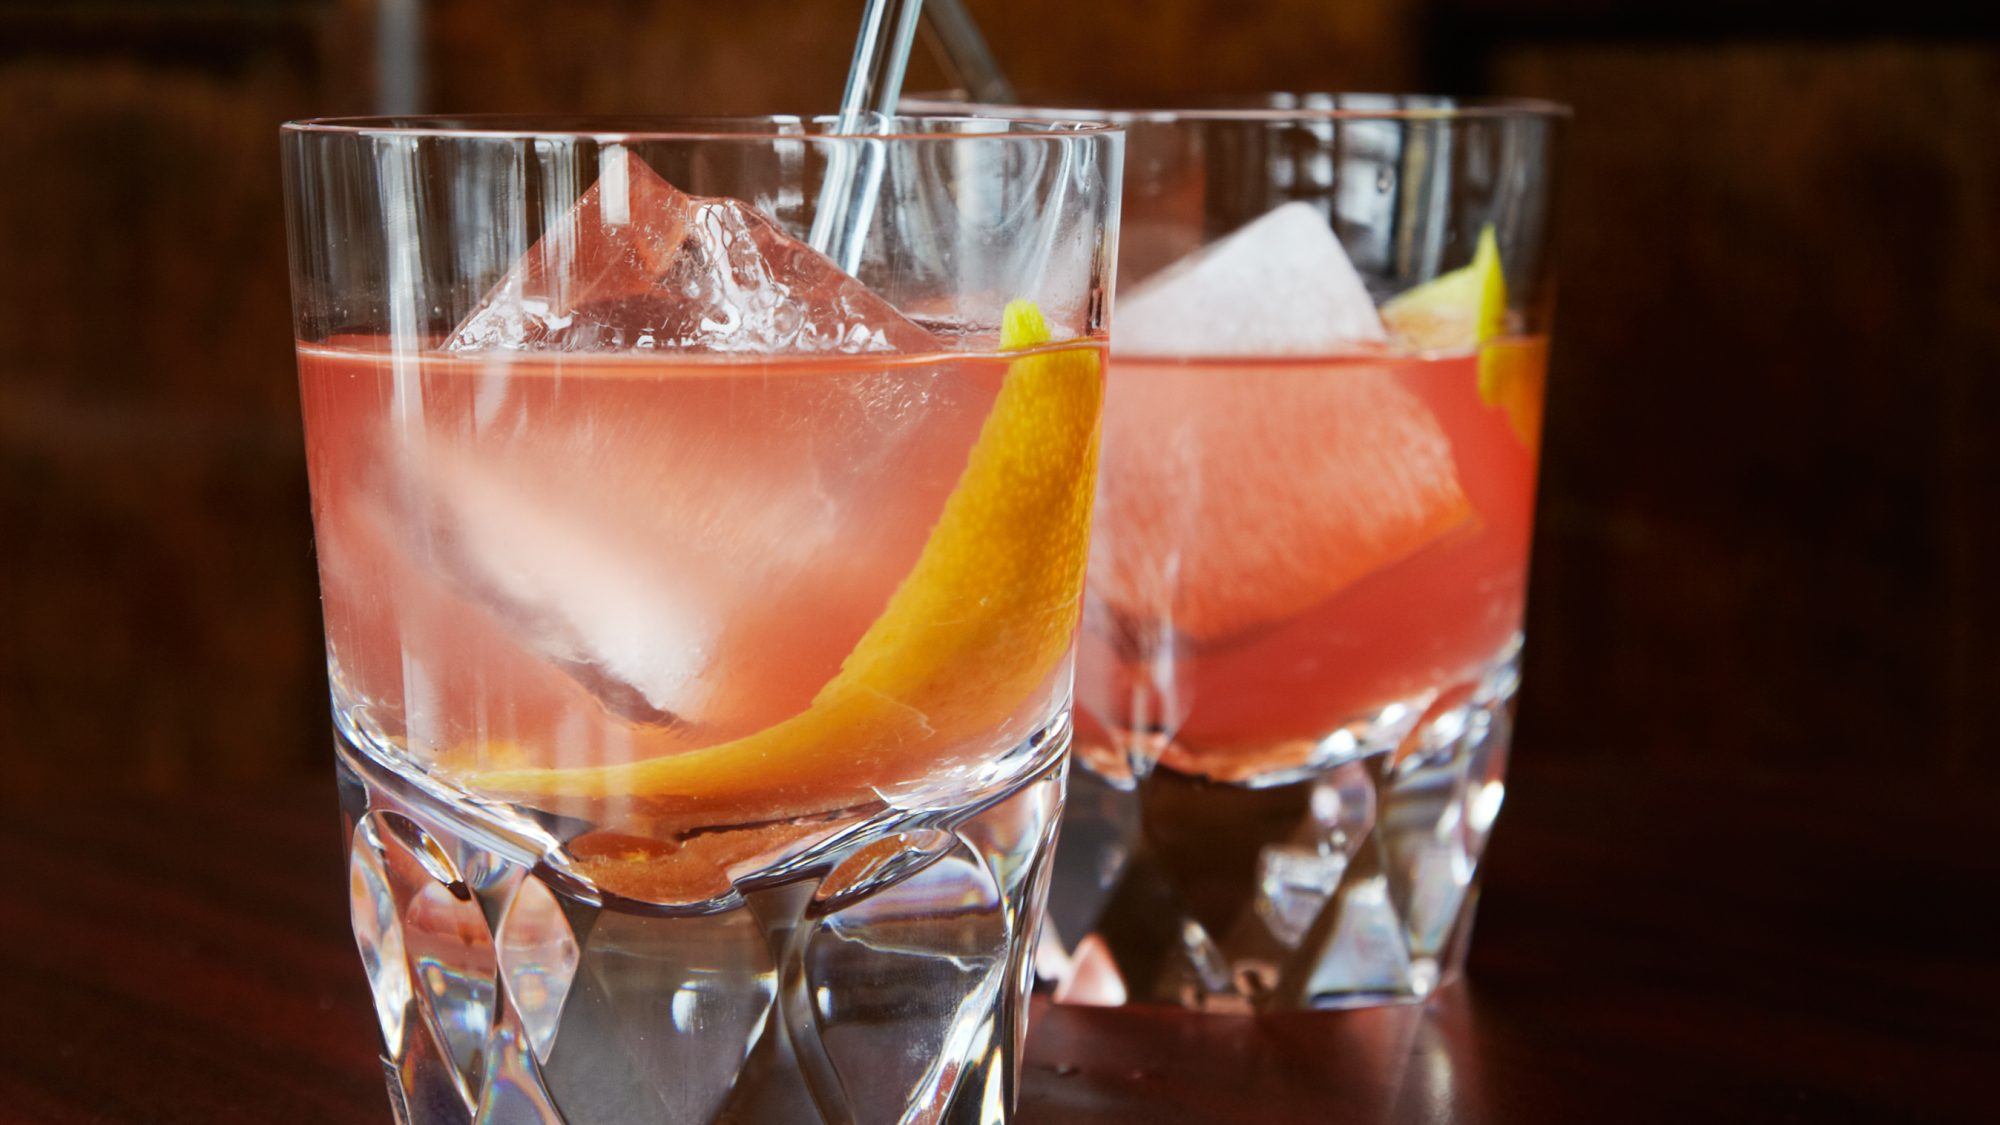 201206-FT-gin-campari-old-fashioned.jpg